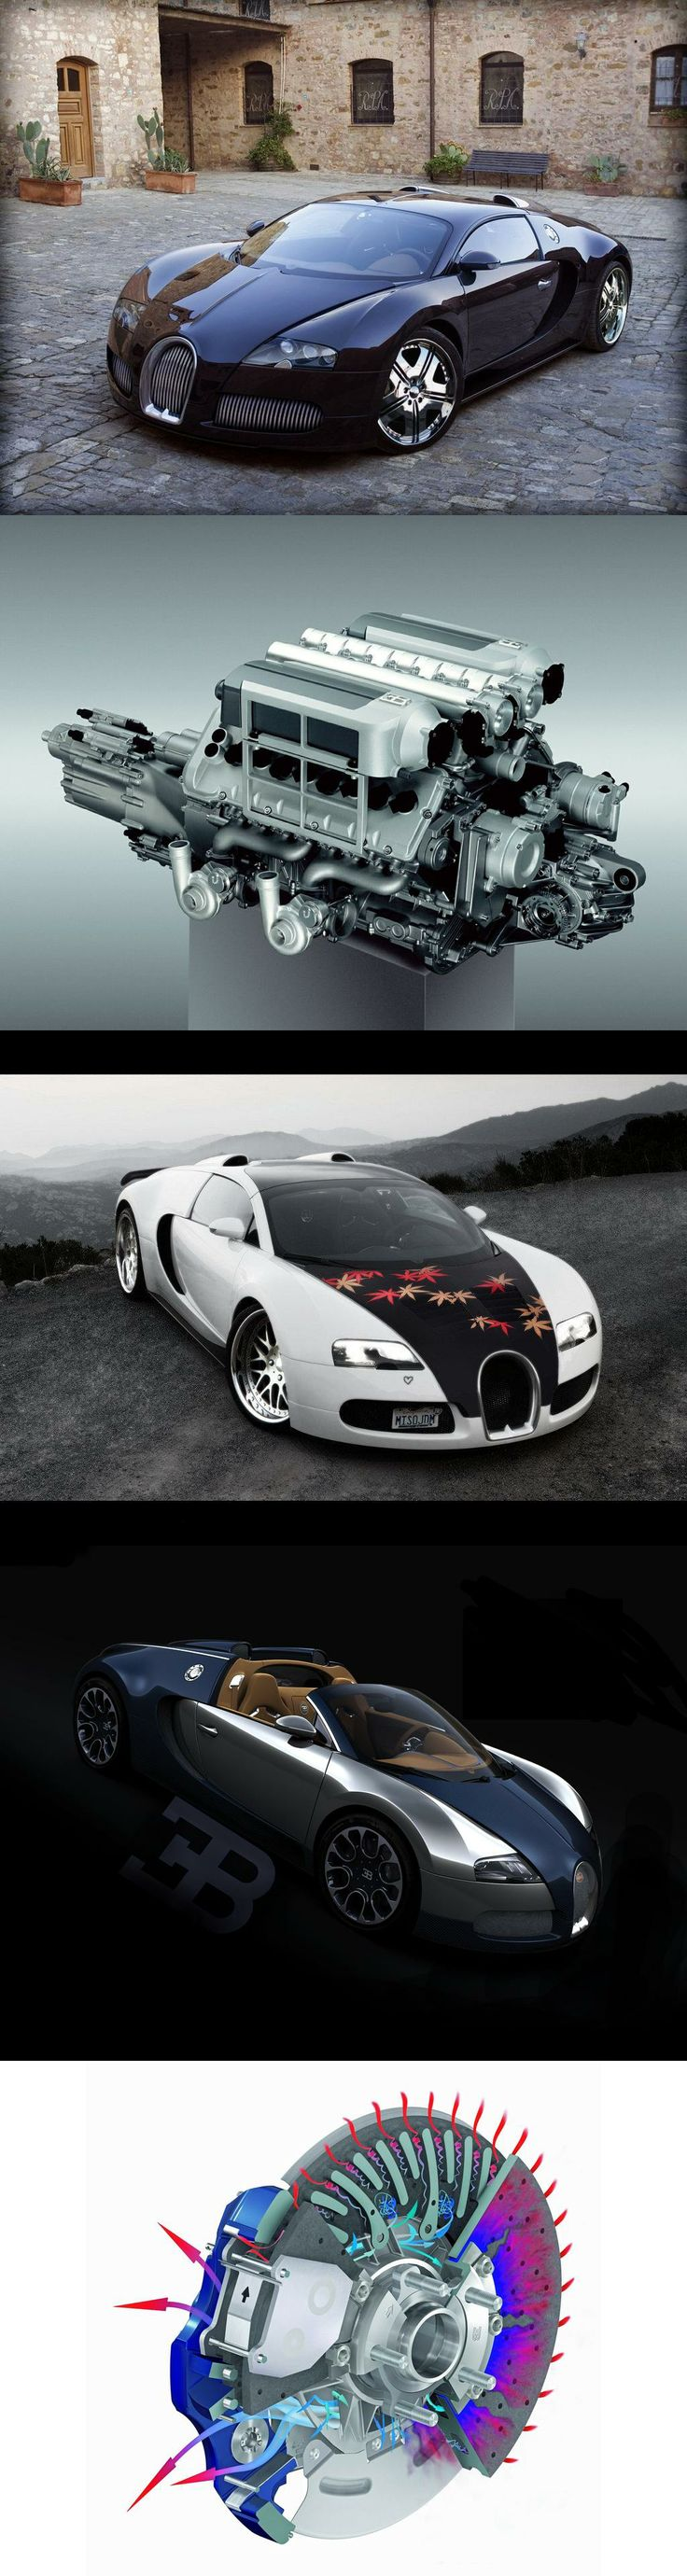 080ceec3d43385d8d9dbf6b46ce33f08--drag-race-automotive-art Gorgeous Bugatti Veyron Grand Sport Vitesse Drag Race Cars Trend